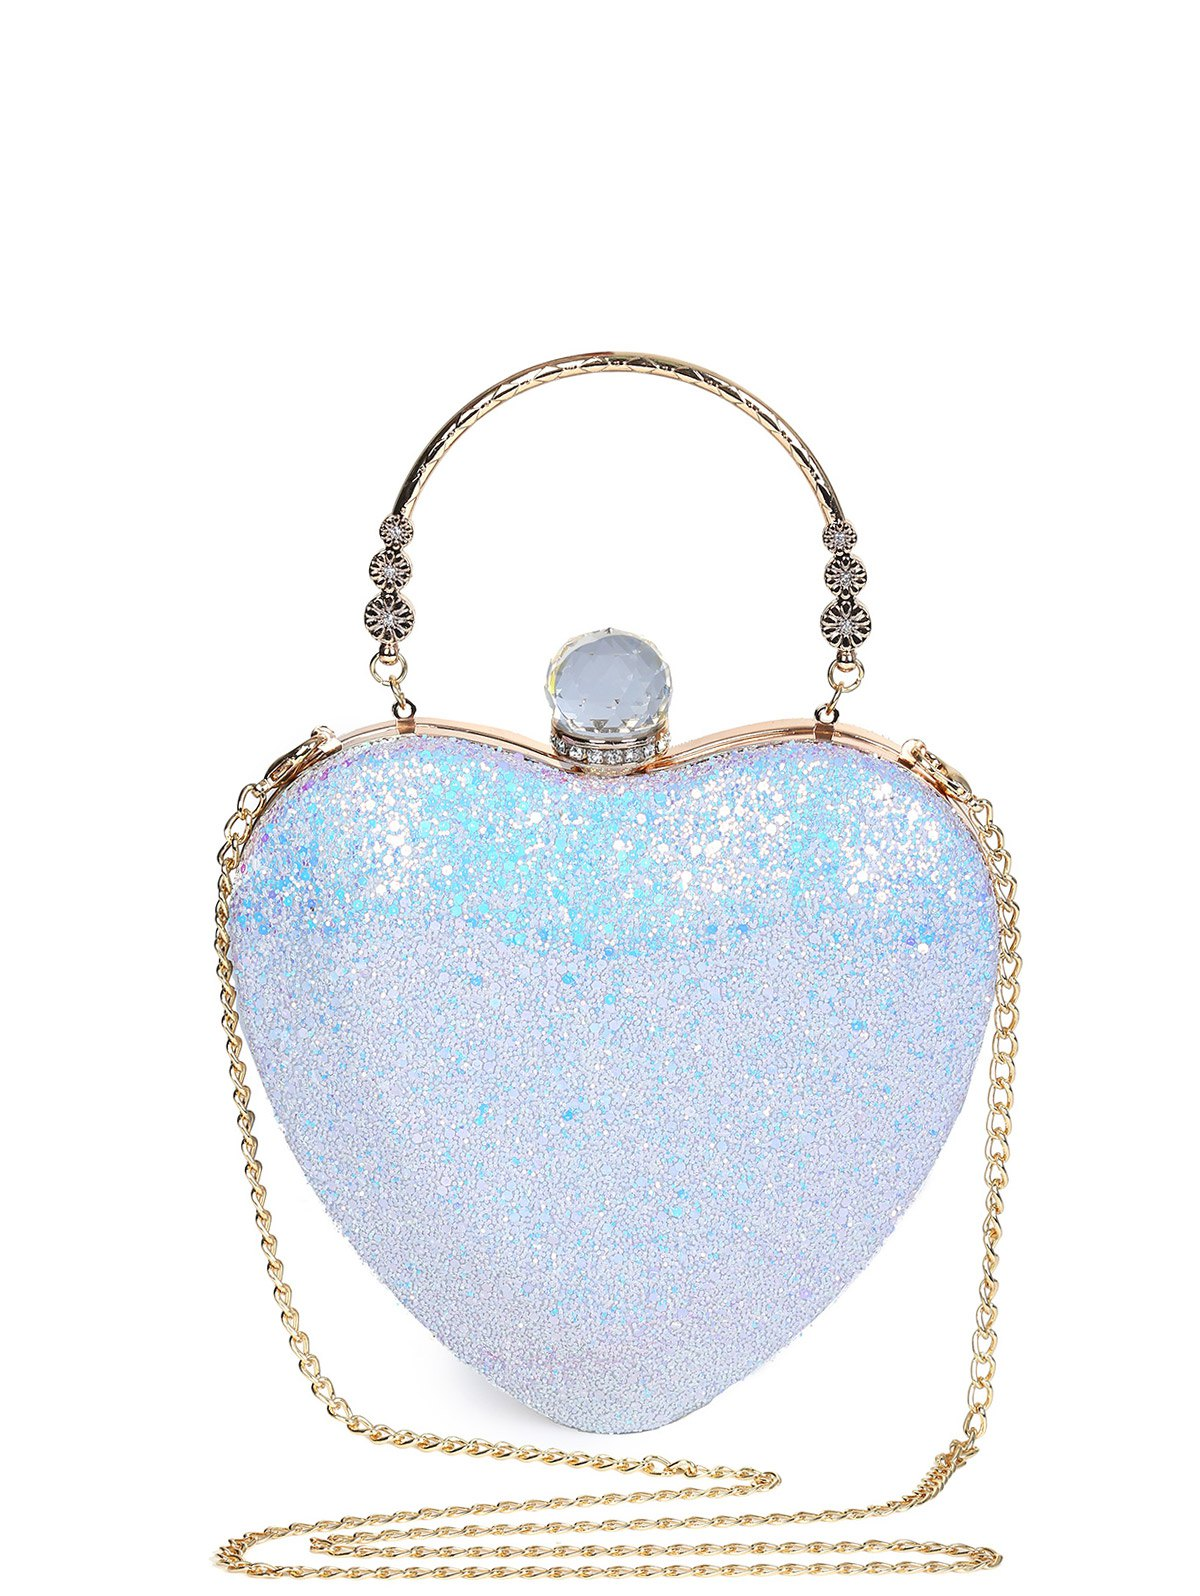 Metal Handle Heart Shape Evening Bag